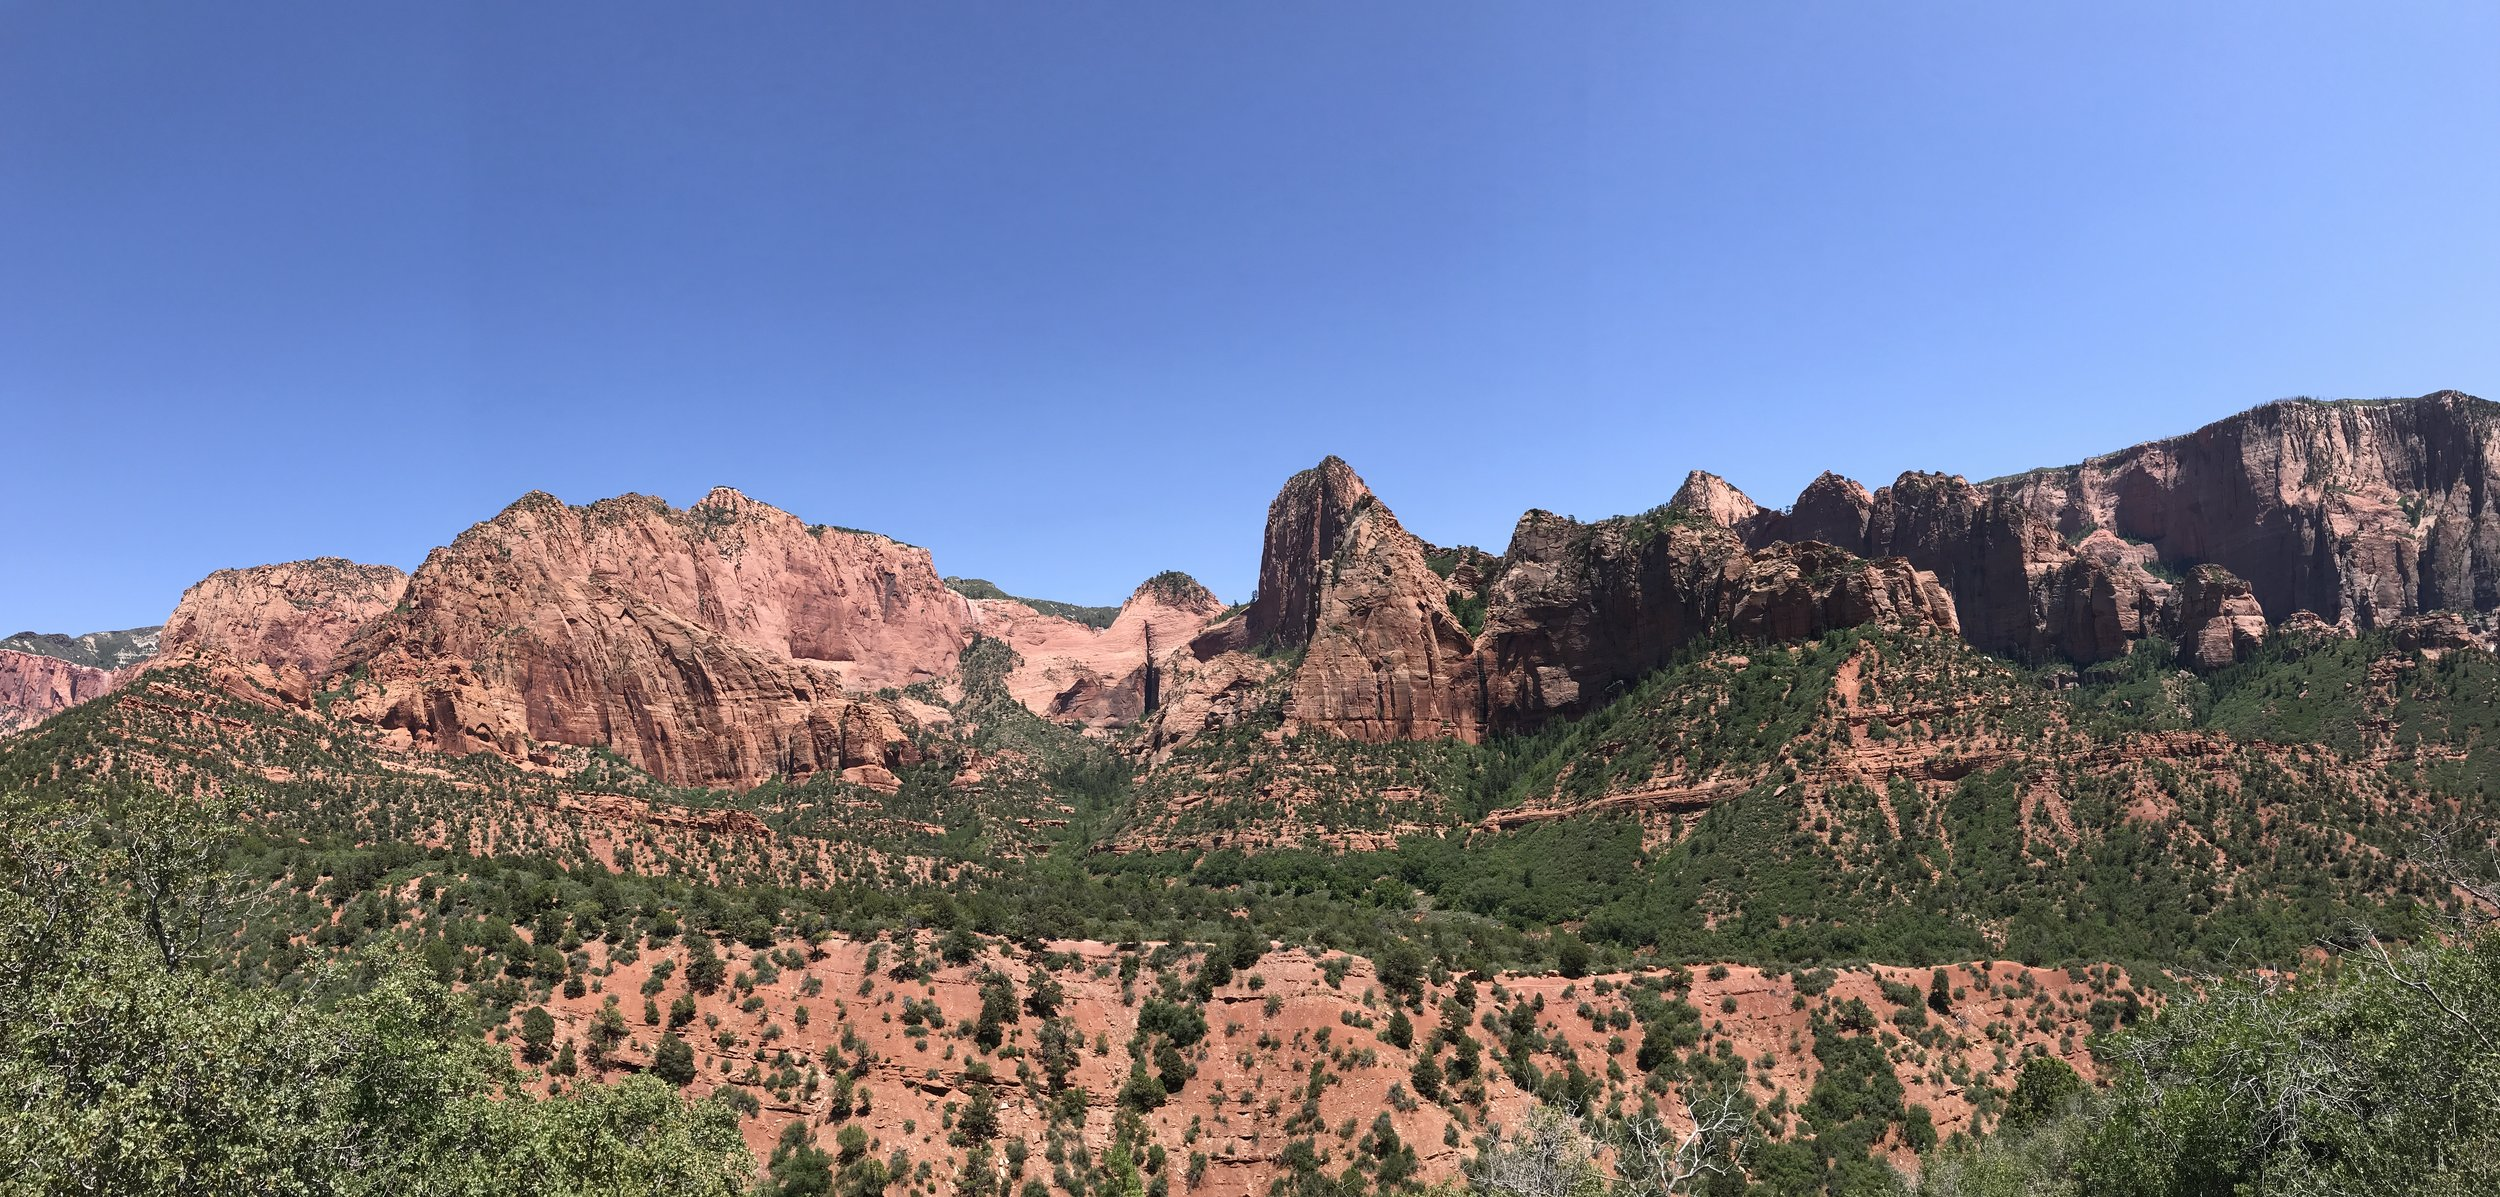 Panorama of the stunning red cliffs in the Kolob Canyons area of Zion National Park